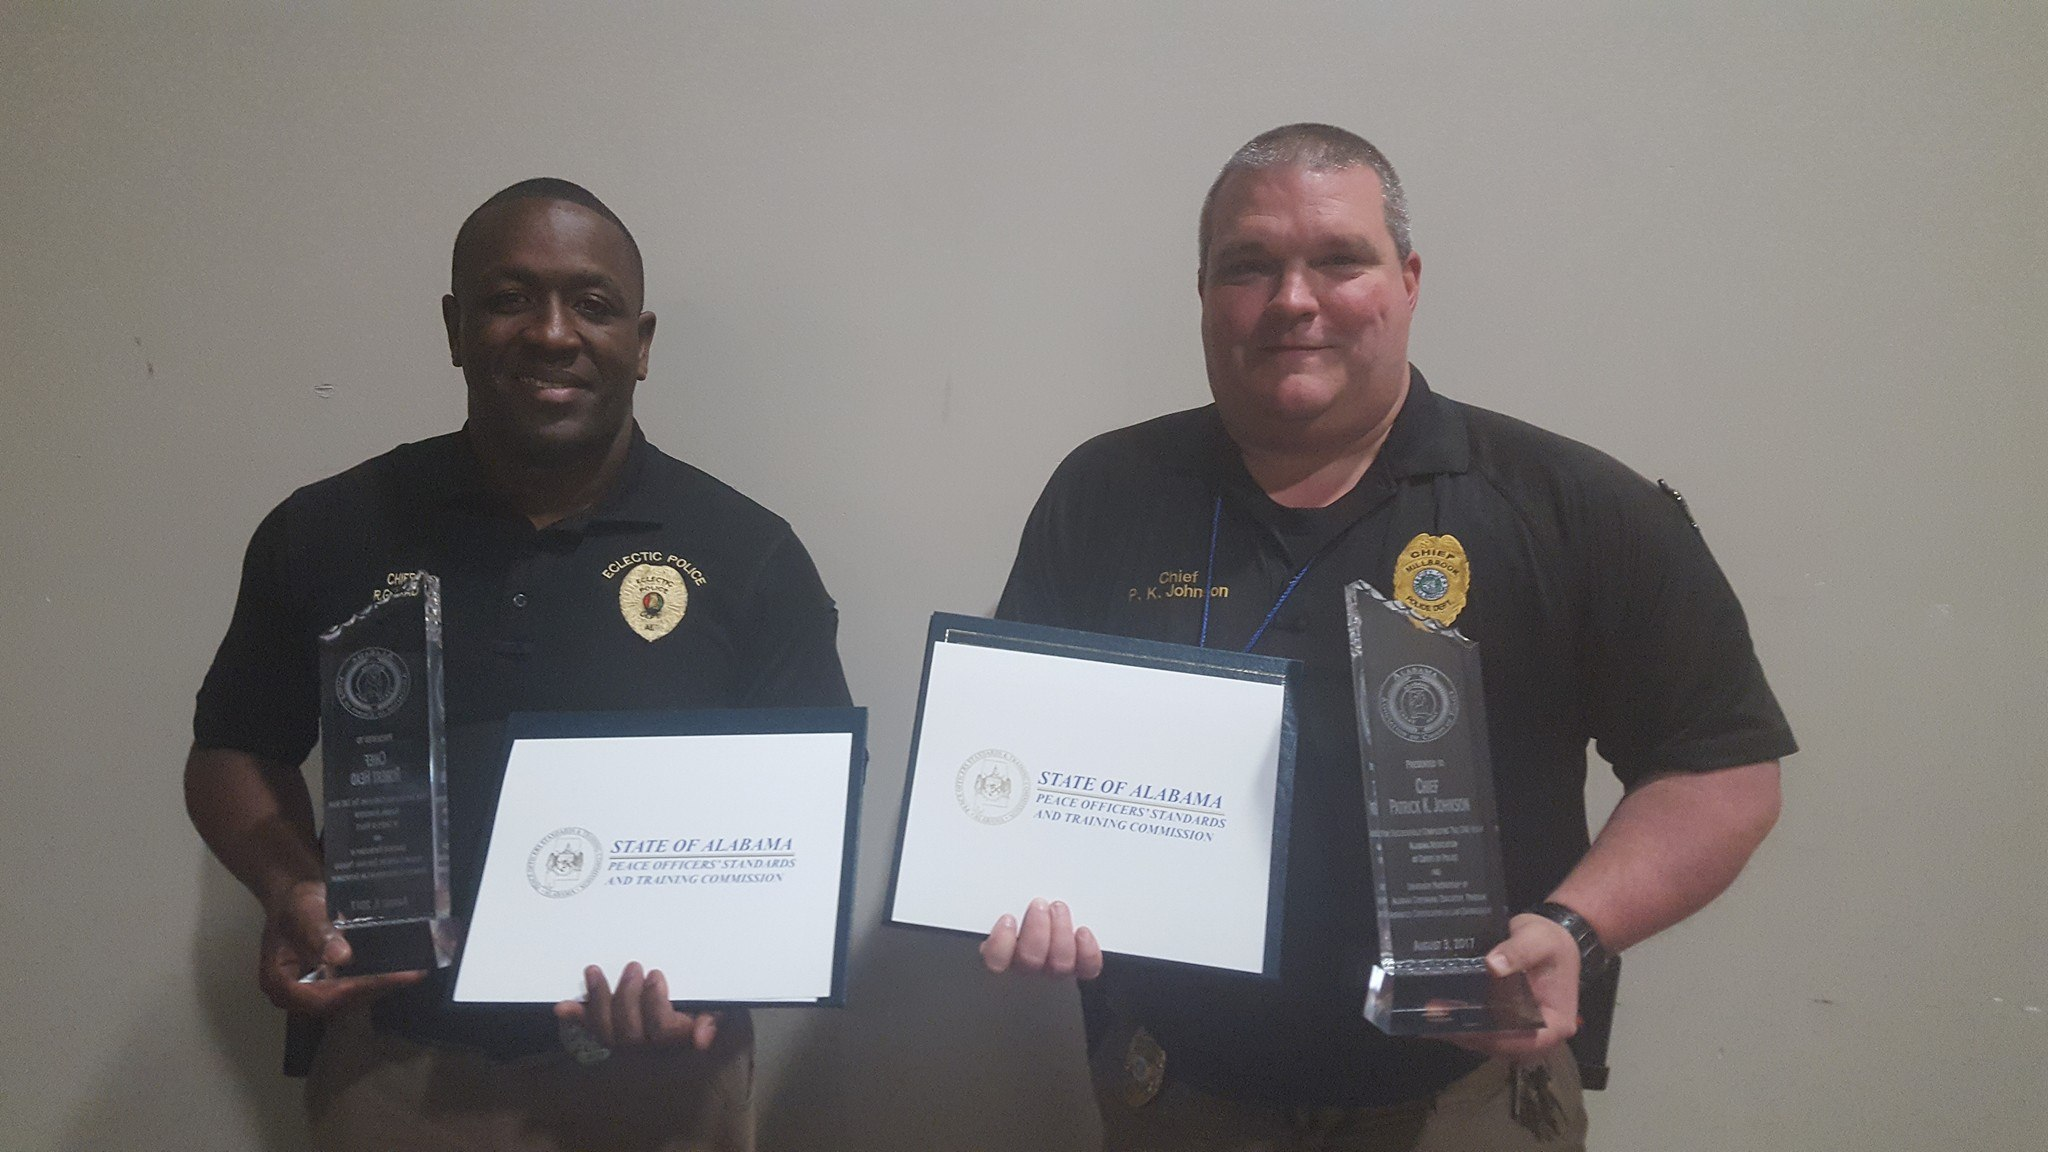 Police chiefs robert head of eclectic and pk johnson of police chiefs robert head of eclectic and pk johnson of millbrook among nine recognized for 240 hours of certification elmoreautauganews xflitez Images